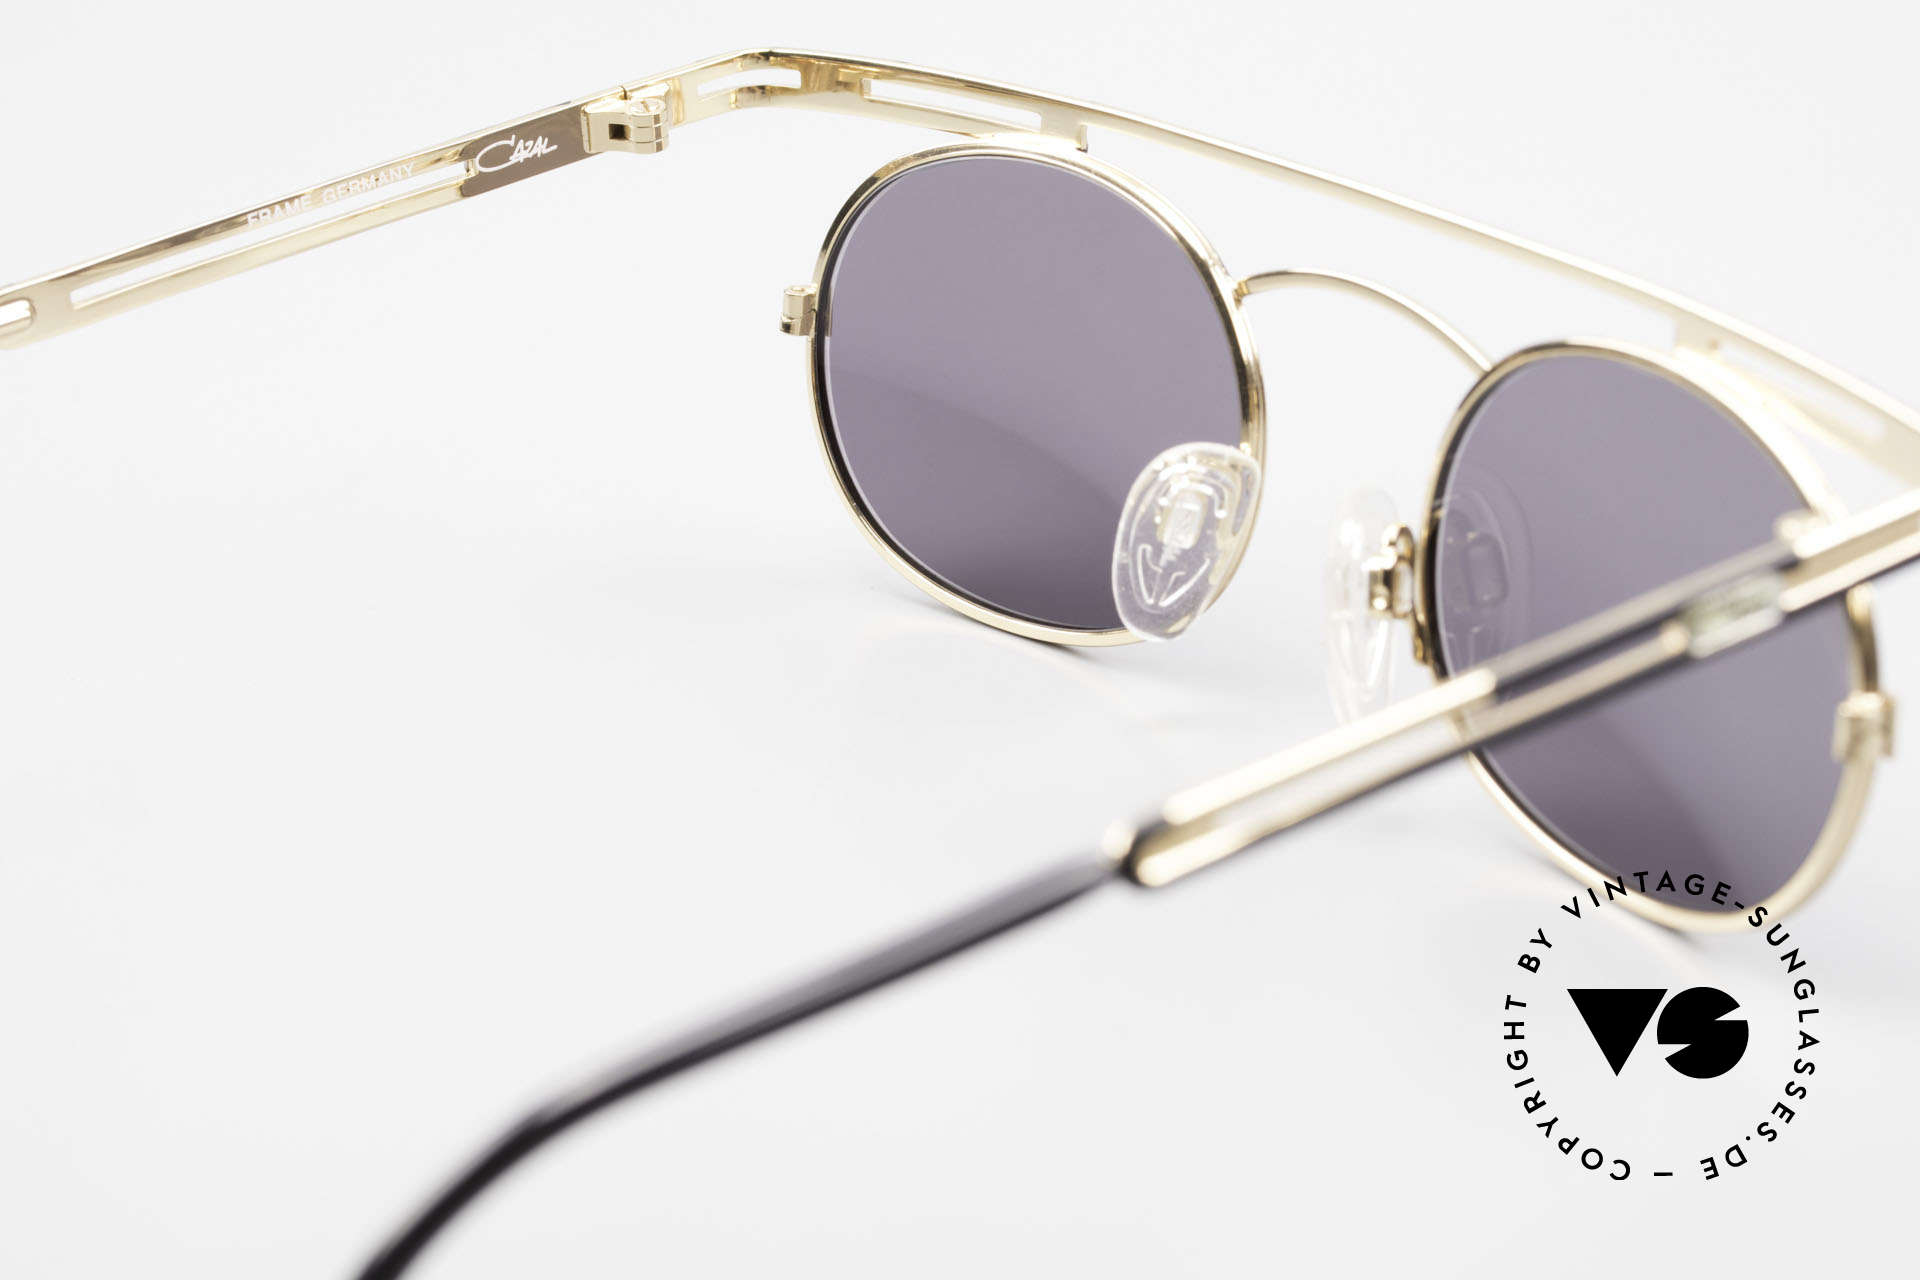 Cazal 761 Vintage Cazal Sunglasses 90's, the sun lenses (100% UV) can be replaced optionally, Made for Men and Women